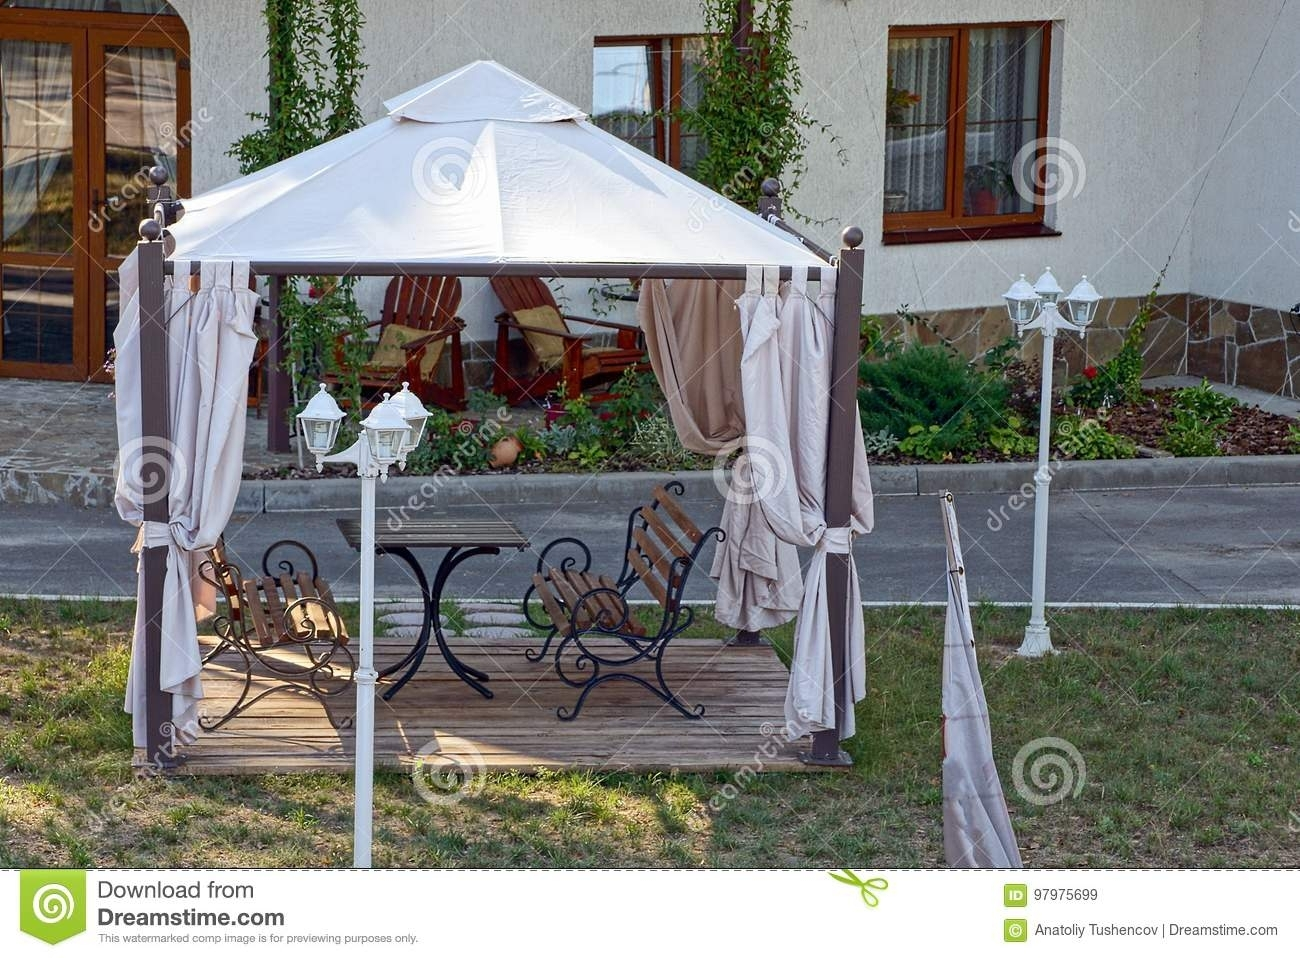 Open Gazebo With Benches On The Lawn With Lanterns Near The Road intended for Outdoor Gazebo Lanterns (Image 13 of 20)